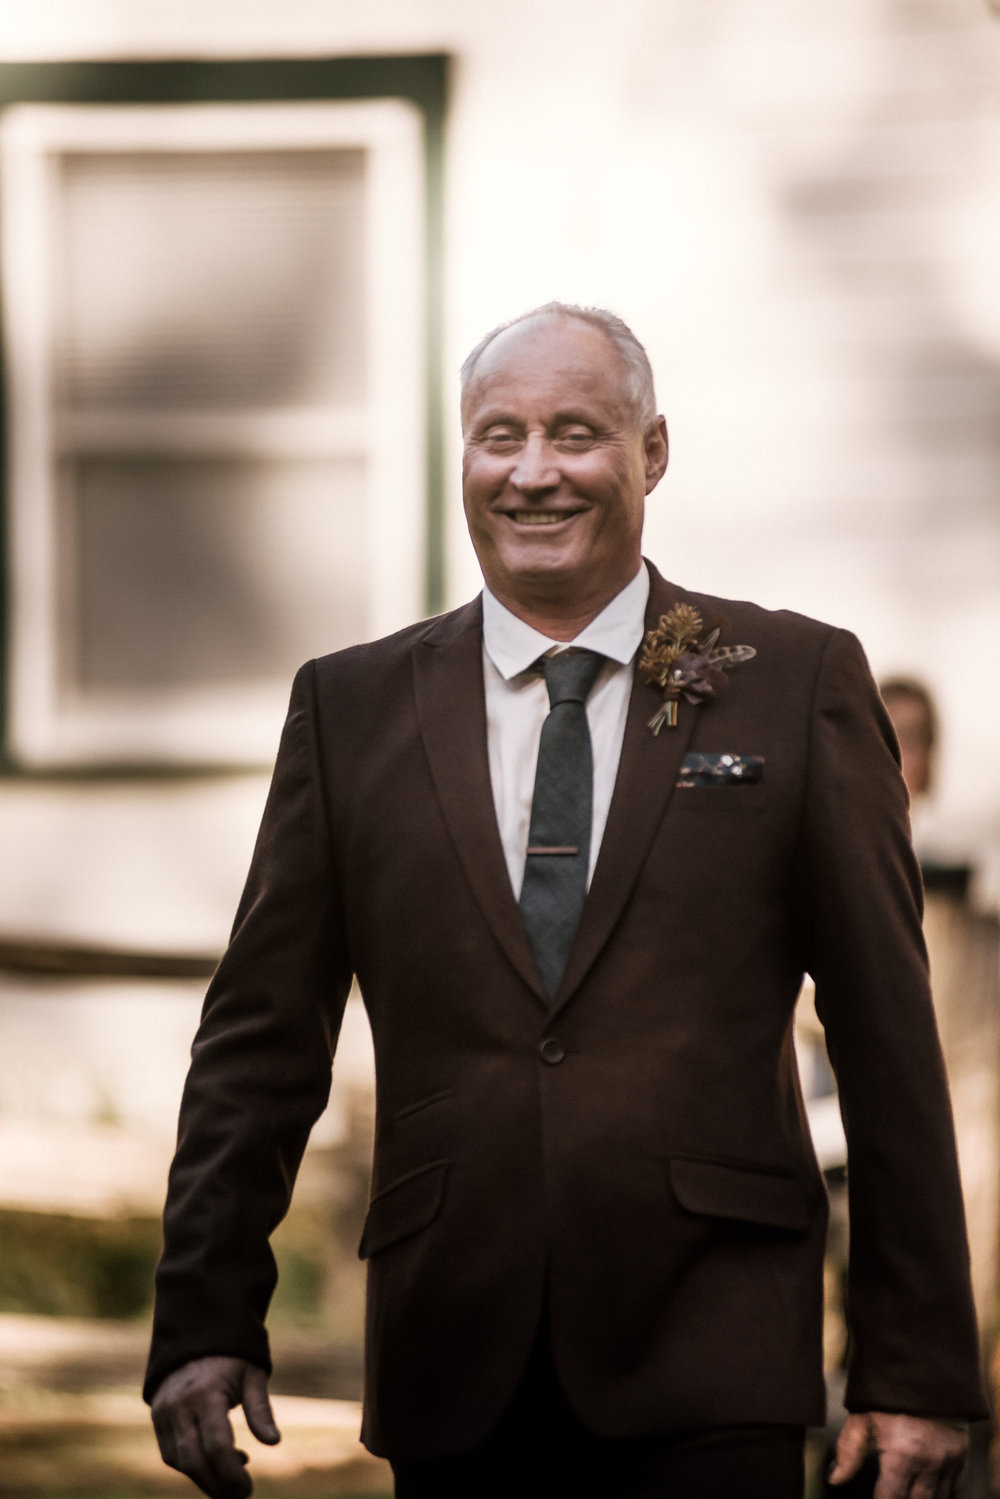 father of the groom goes down the aisle with a smile shot by wedding photographer at the charming St. George Hotel in Volcano California